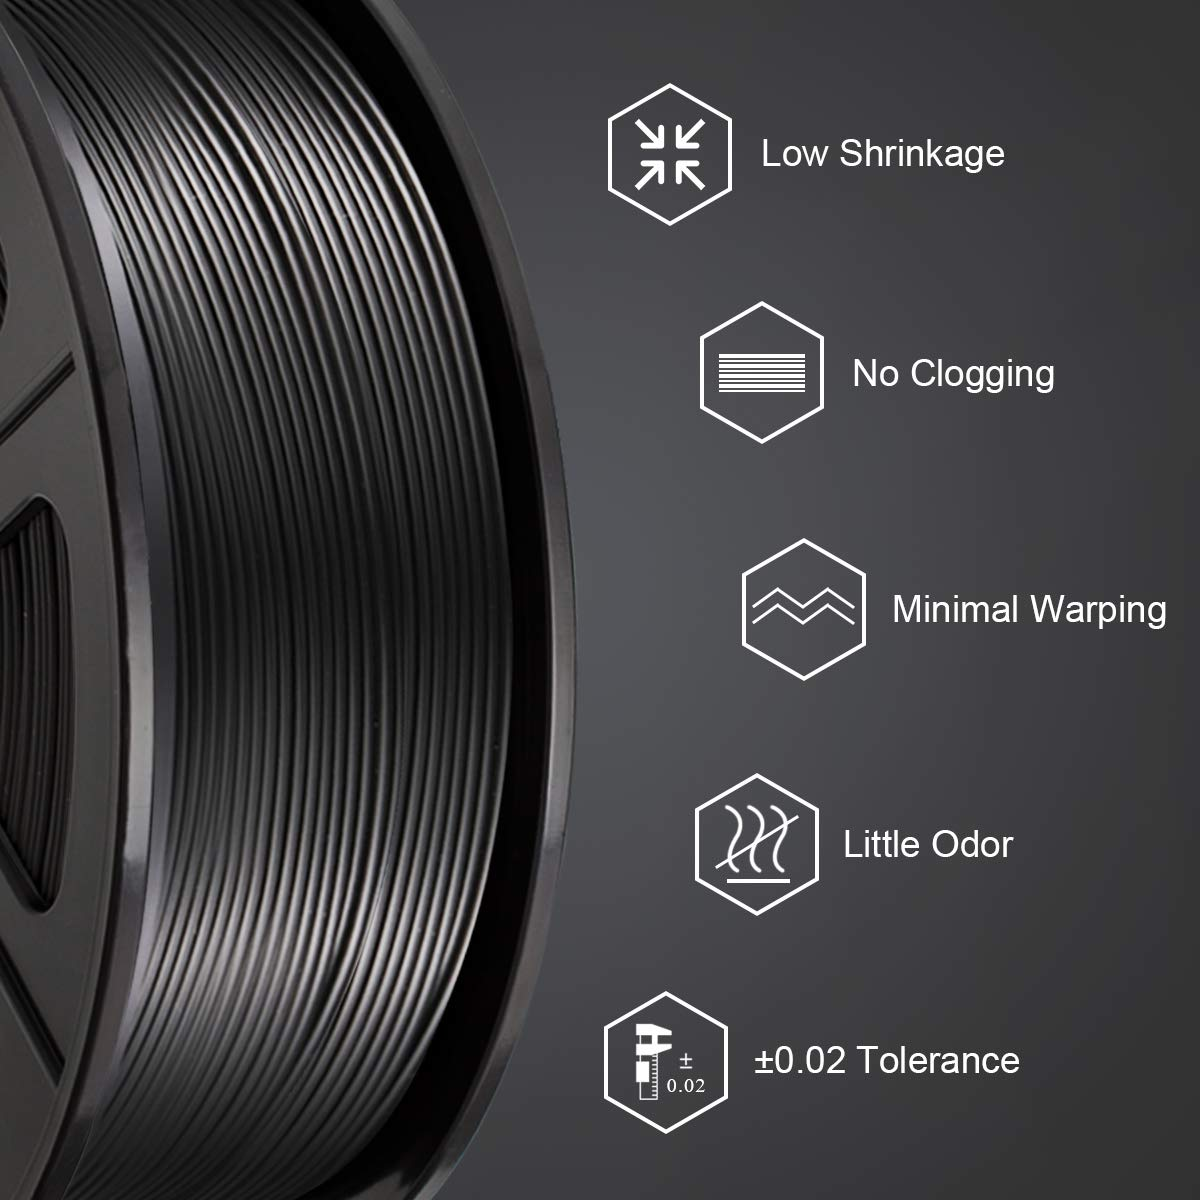 3D Warhorse ABS Filament 1.75mm,White ABS Filament for 3D Printer,1KG Spool,Dimensional Accuracy // 0.02mm,3D Printing Filament ABS White,ABS Filament,1.75mm Filament